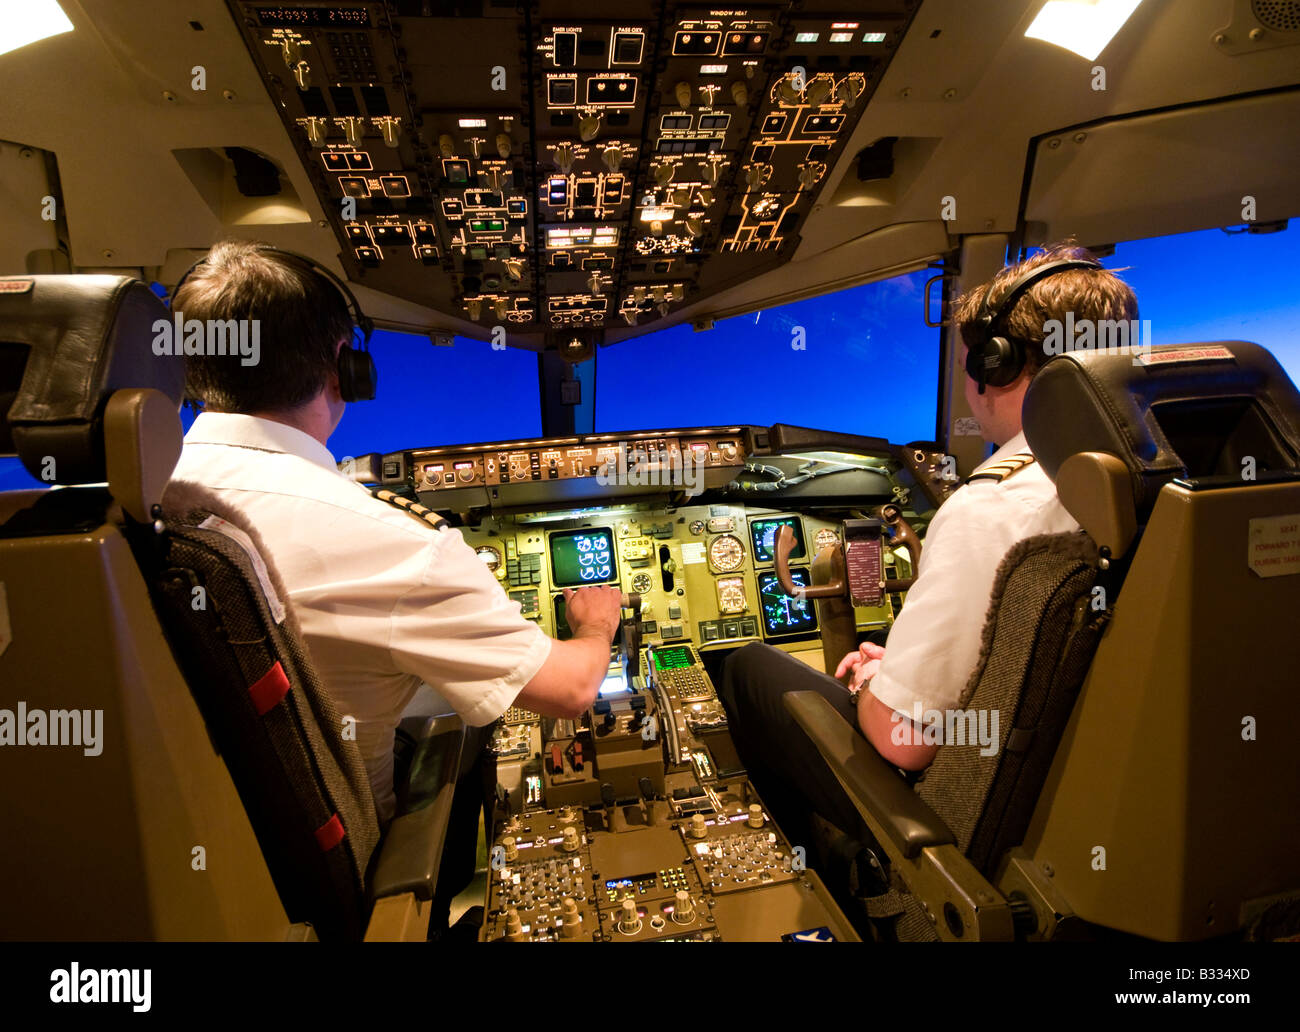 2 Pilots in Cockpit of a Boeing 757 Aircraft over Europe - Stock Image